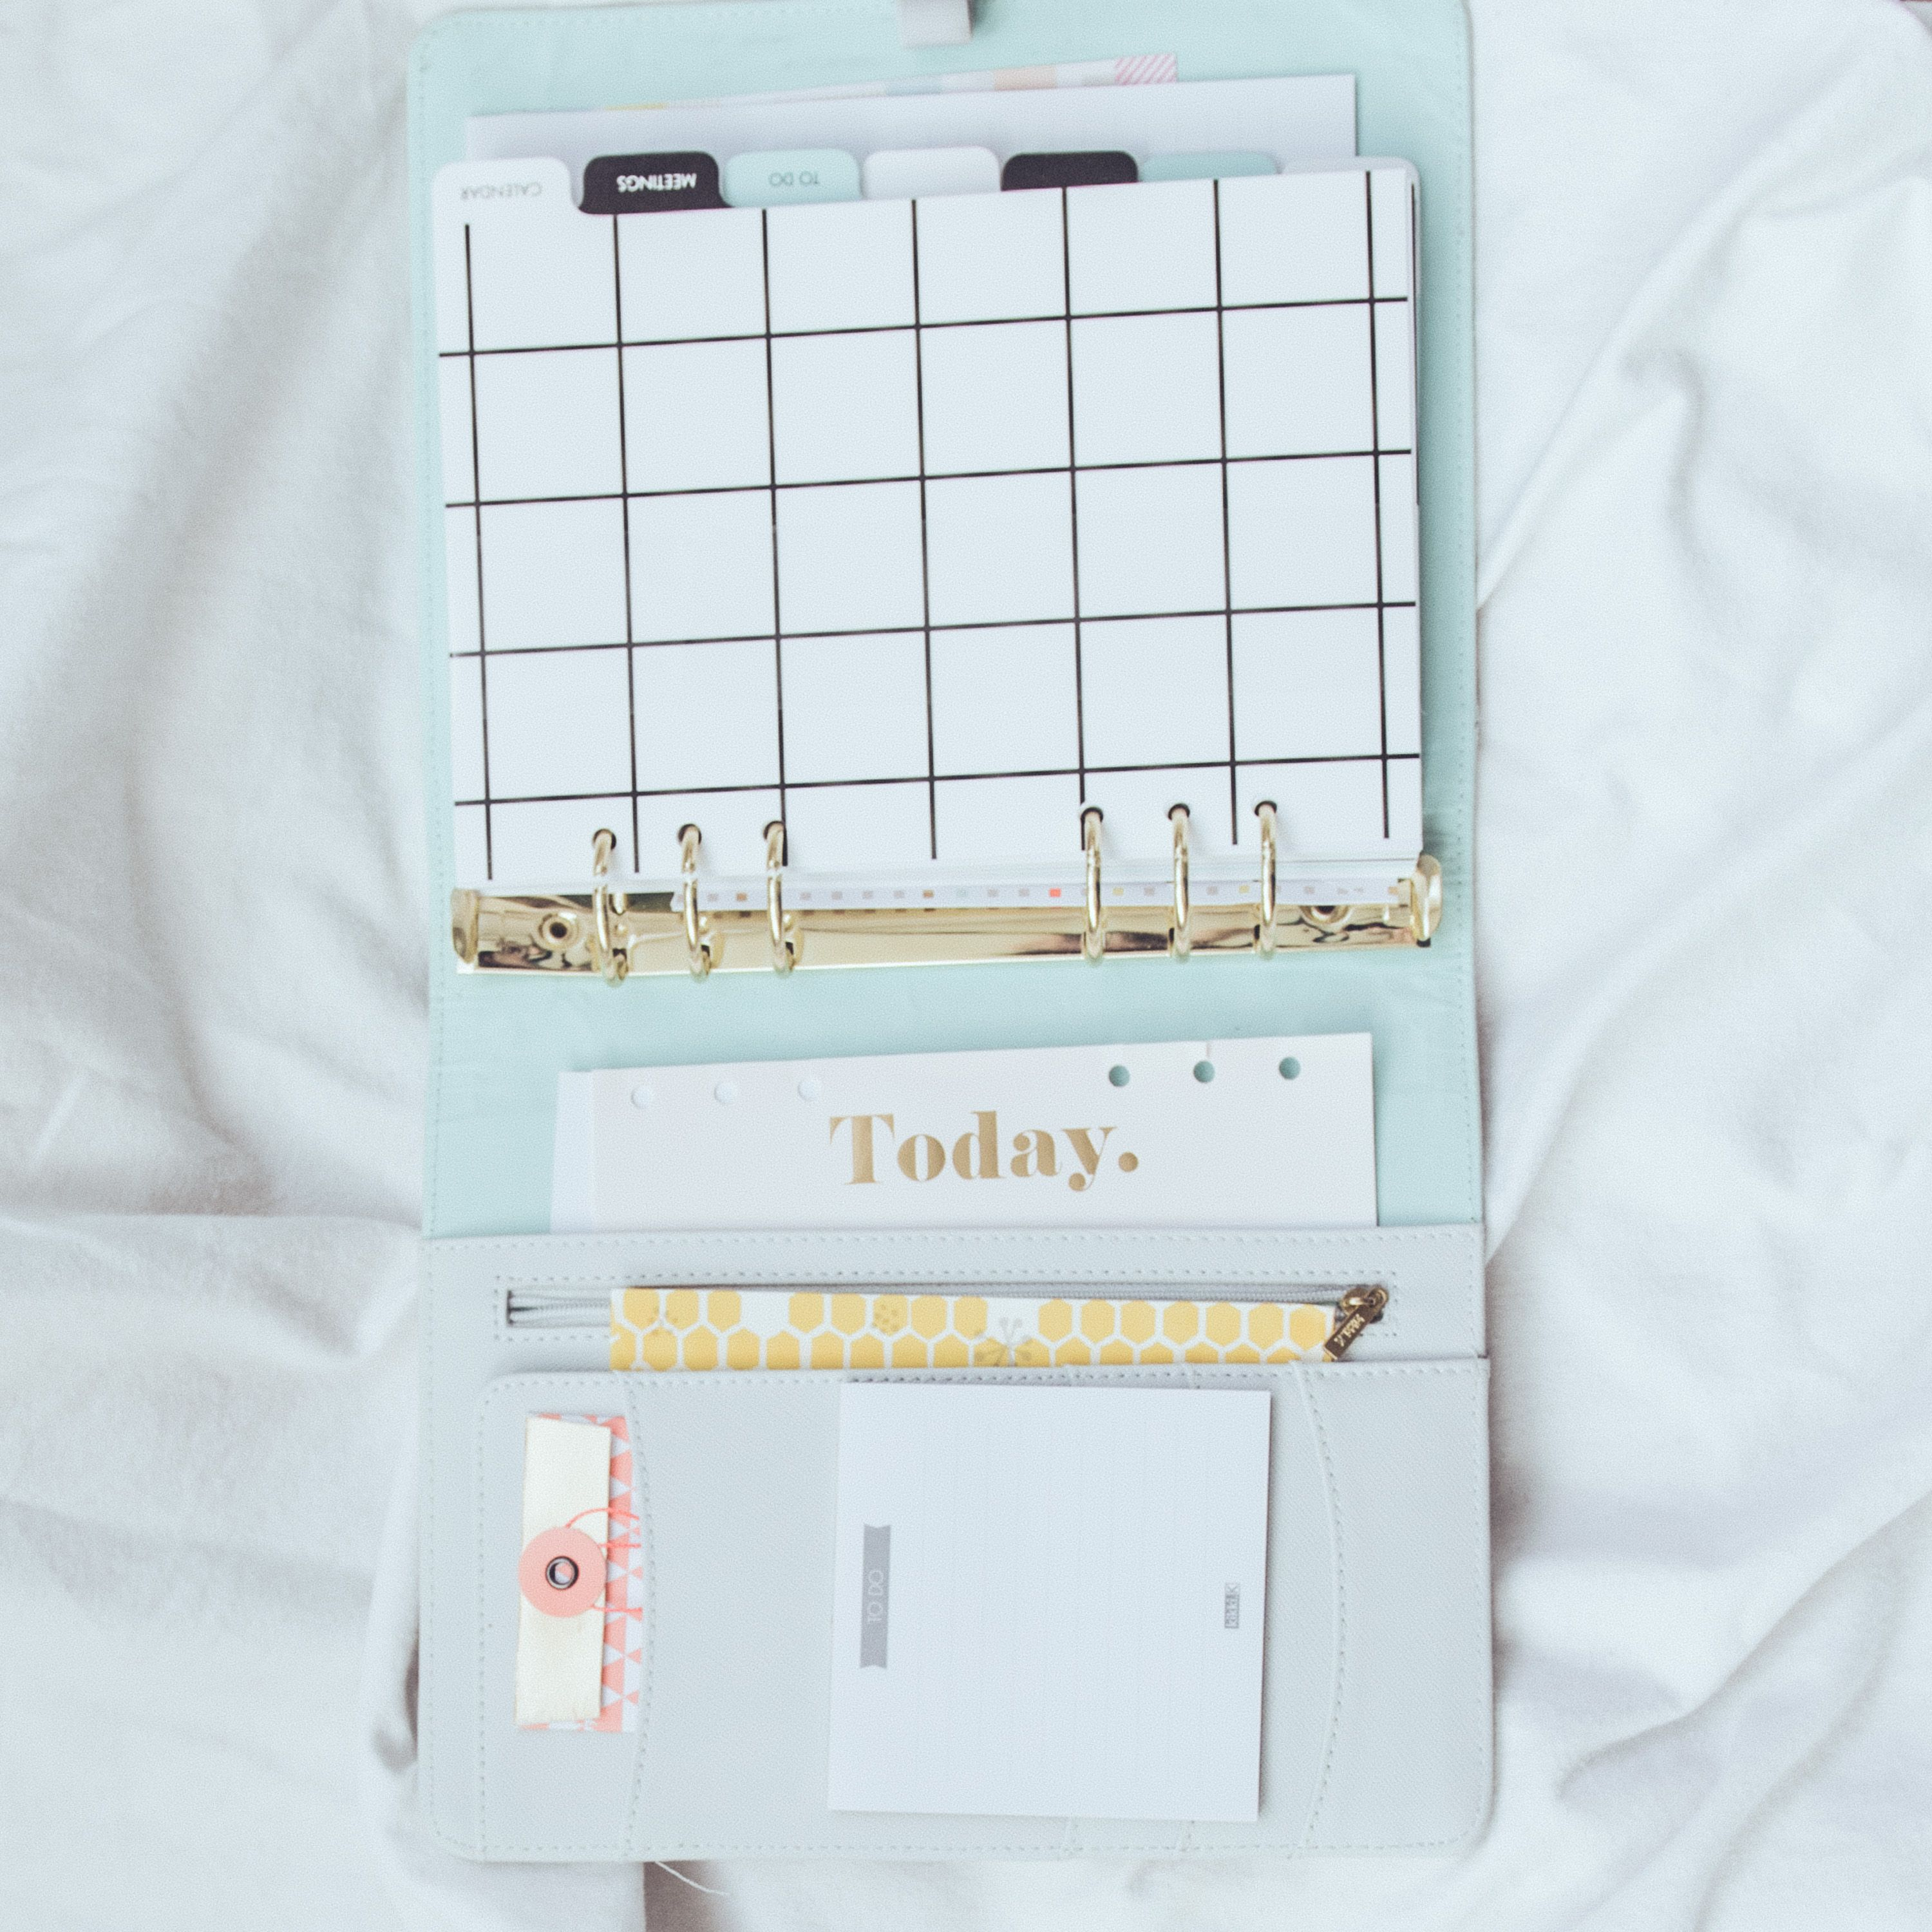 I organise my life appointments routine and to do lists